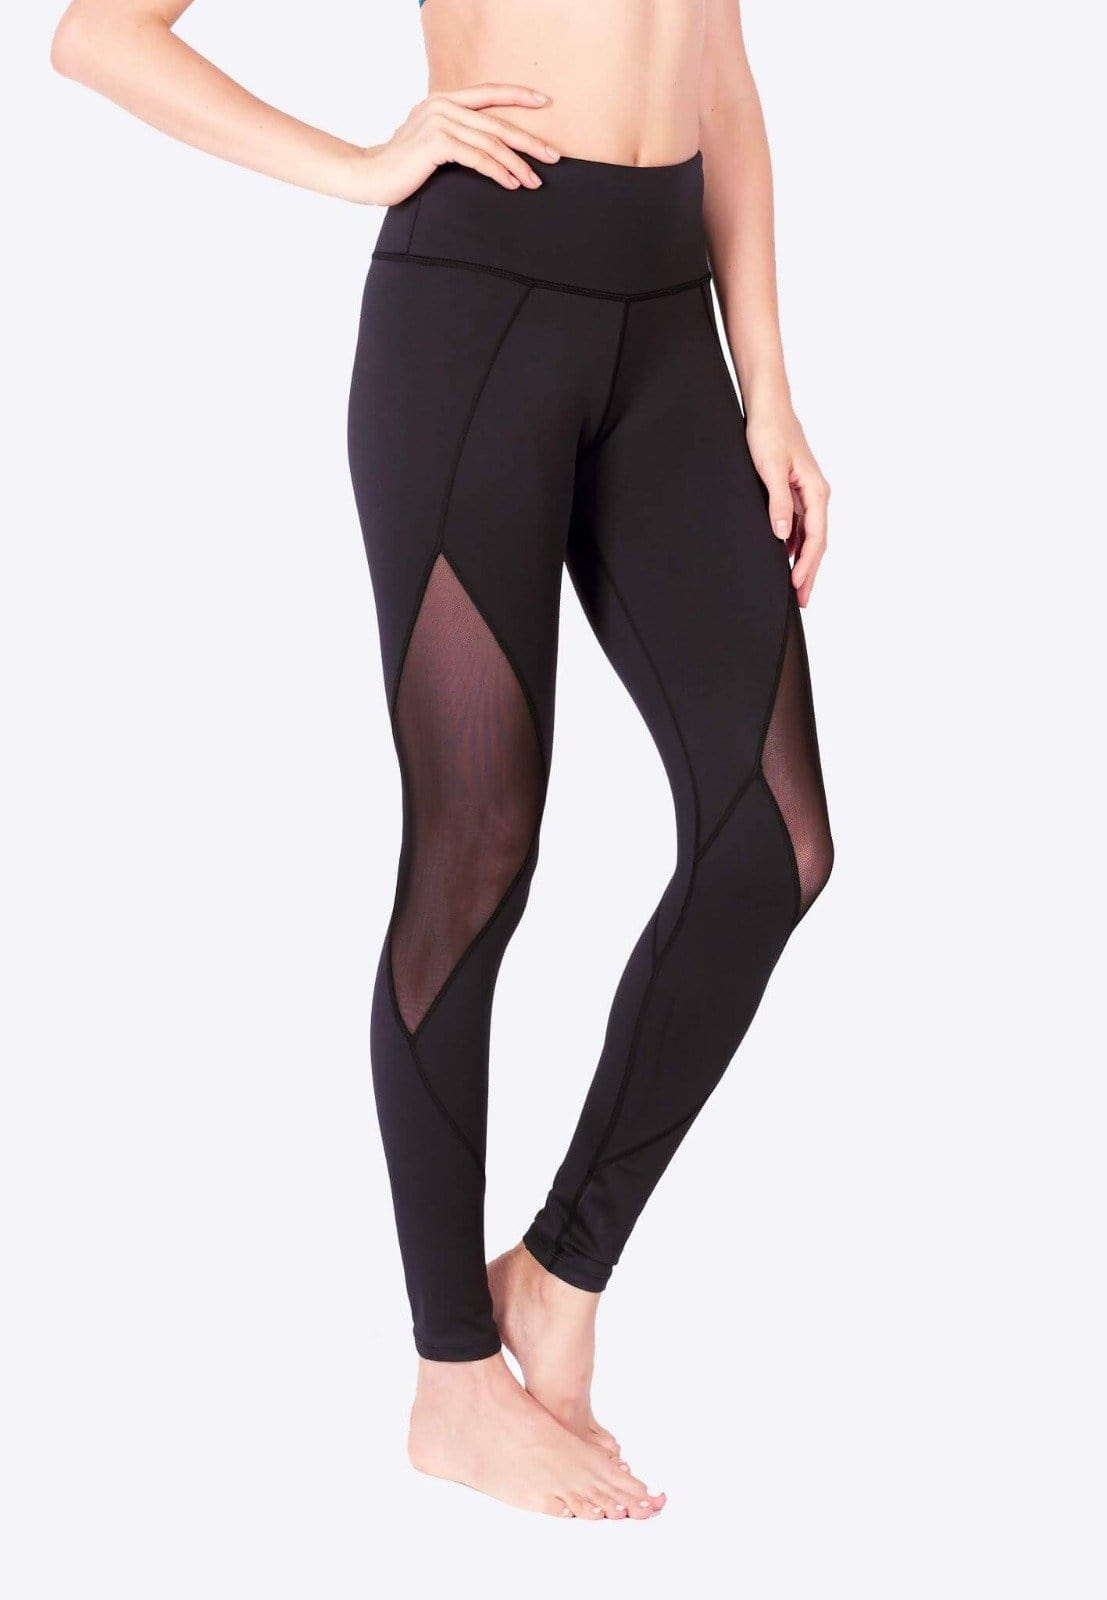 FUNFIT LIMITLESS Diamond Mesh Leggings (with Keeperband®) (Black) | XS - 3XL